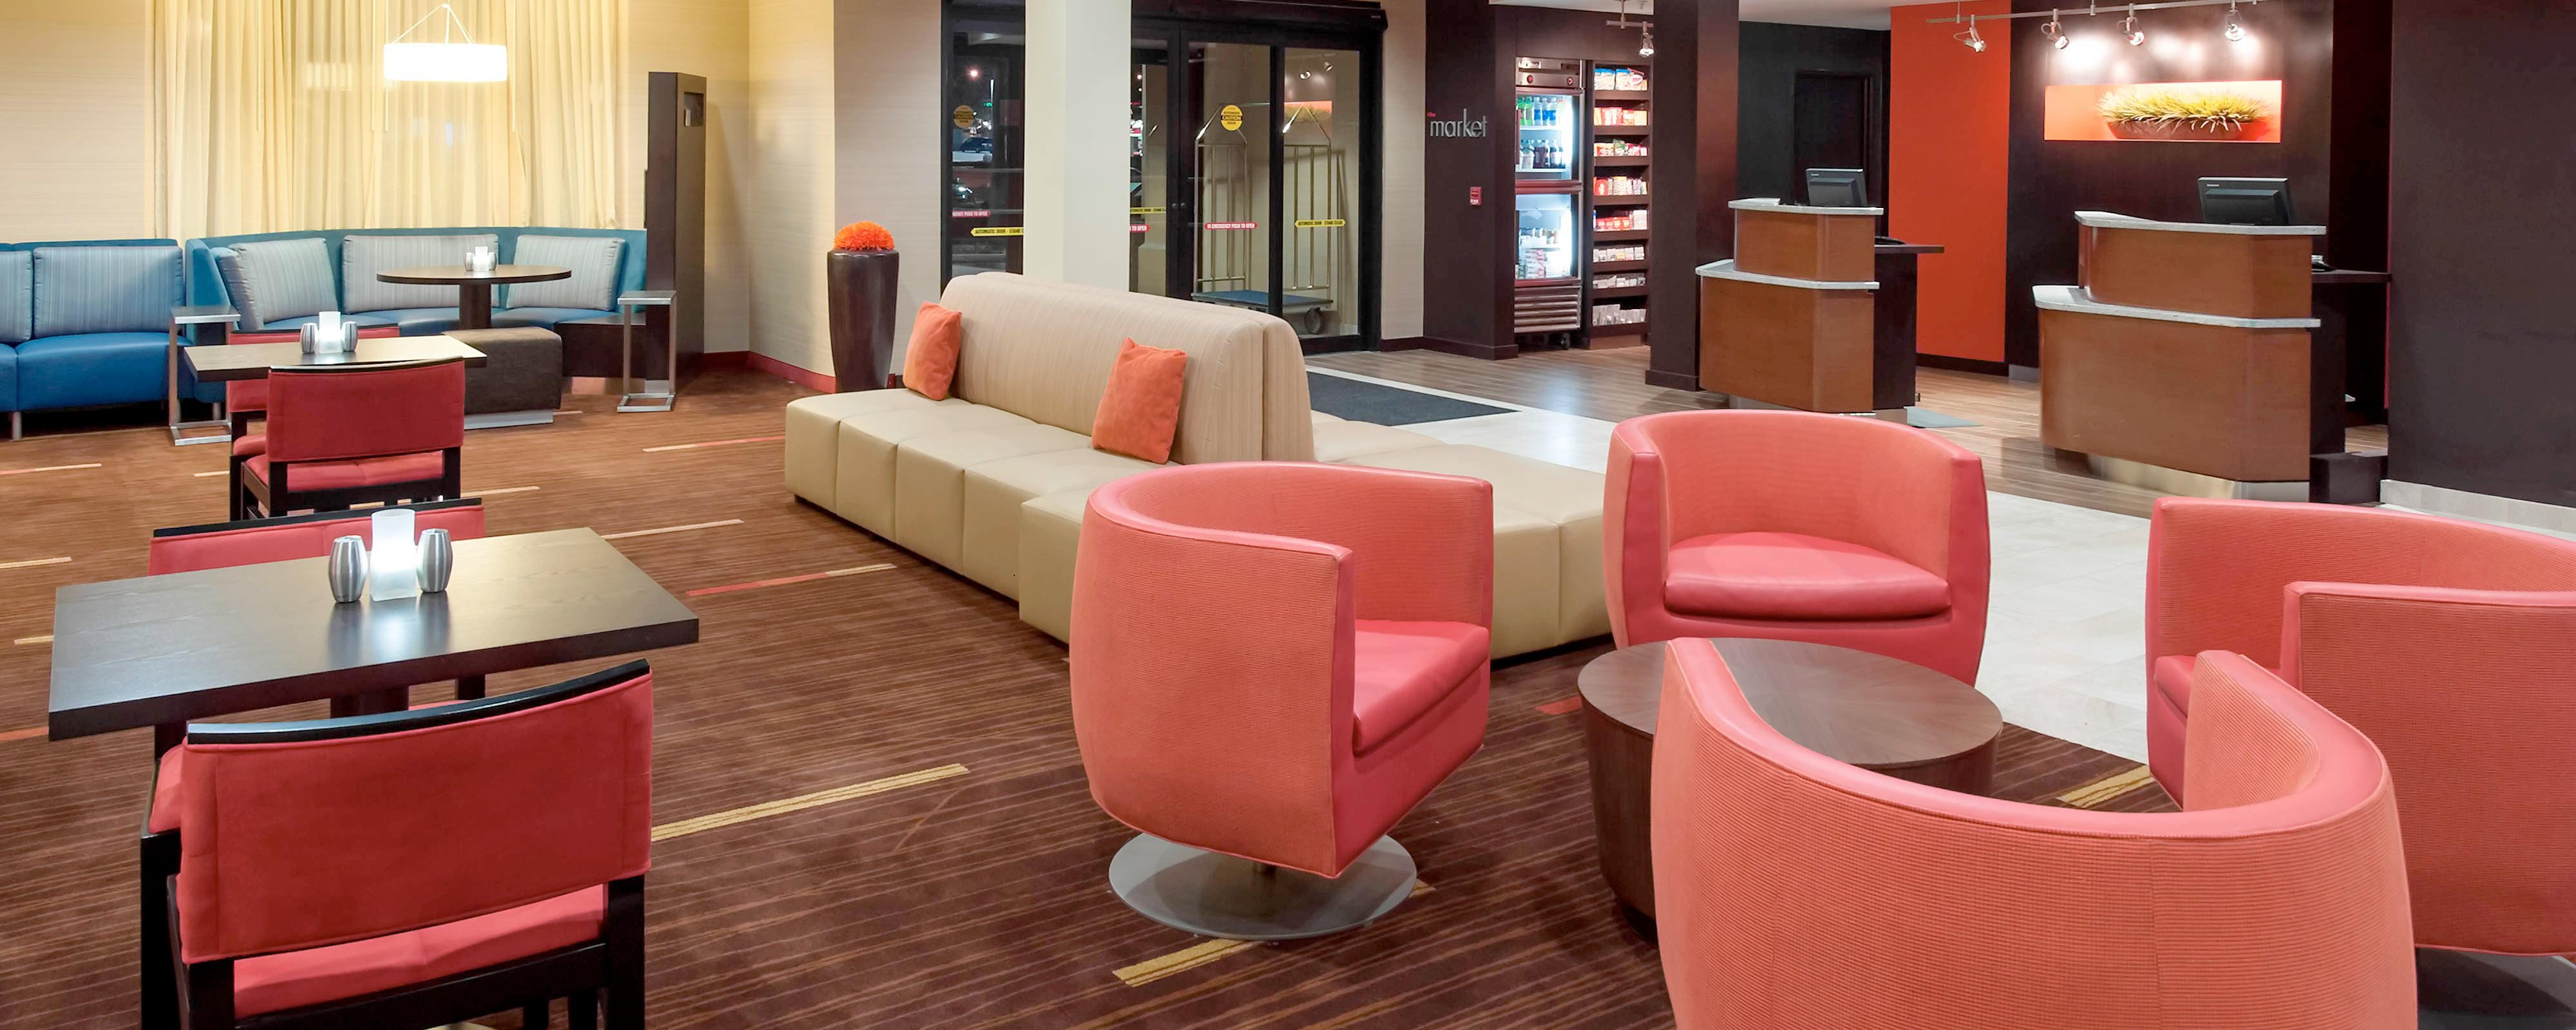 Lobby Seating - Lakeland FL hotels